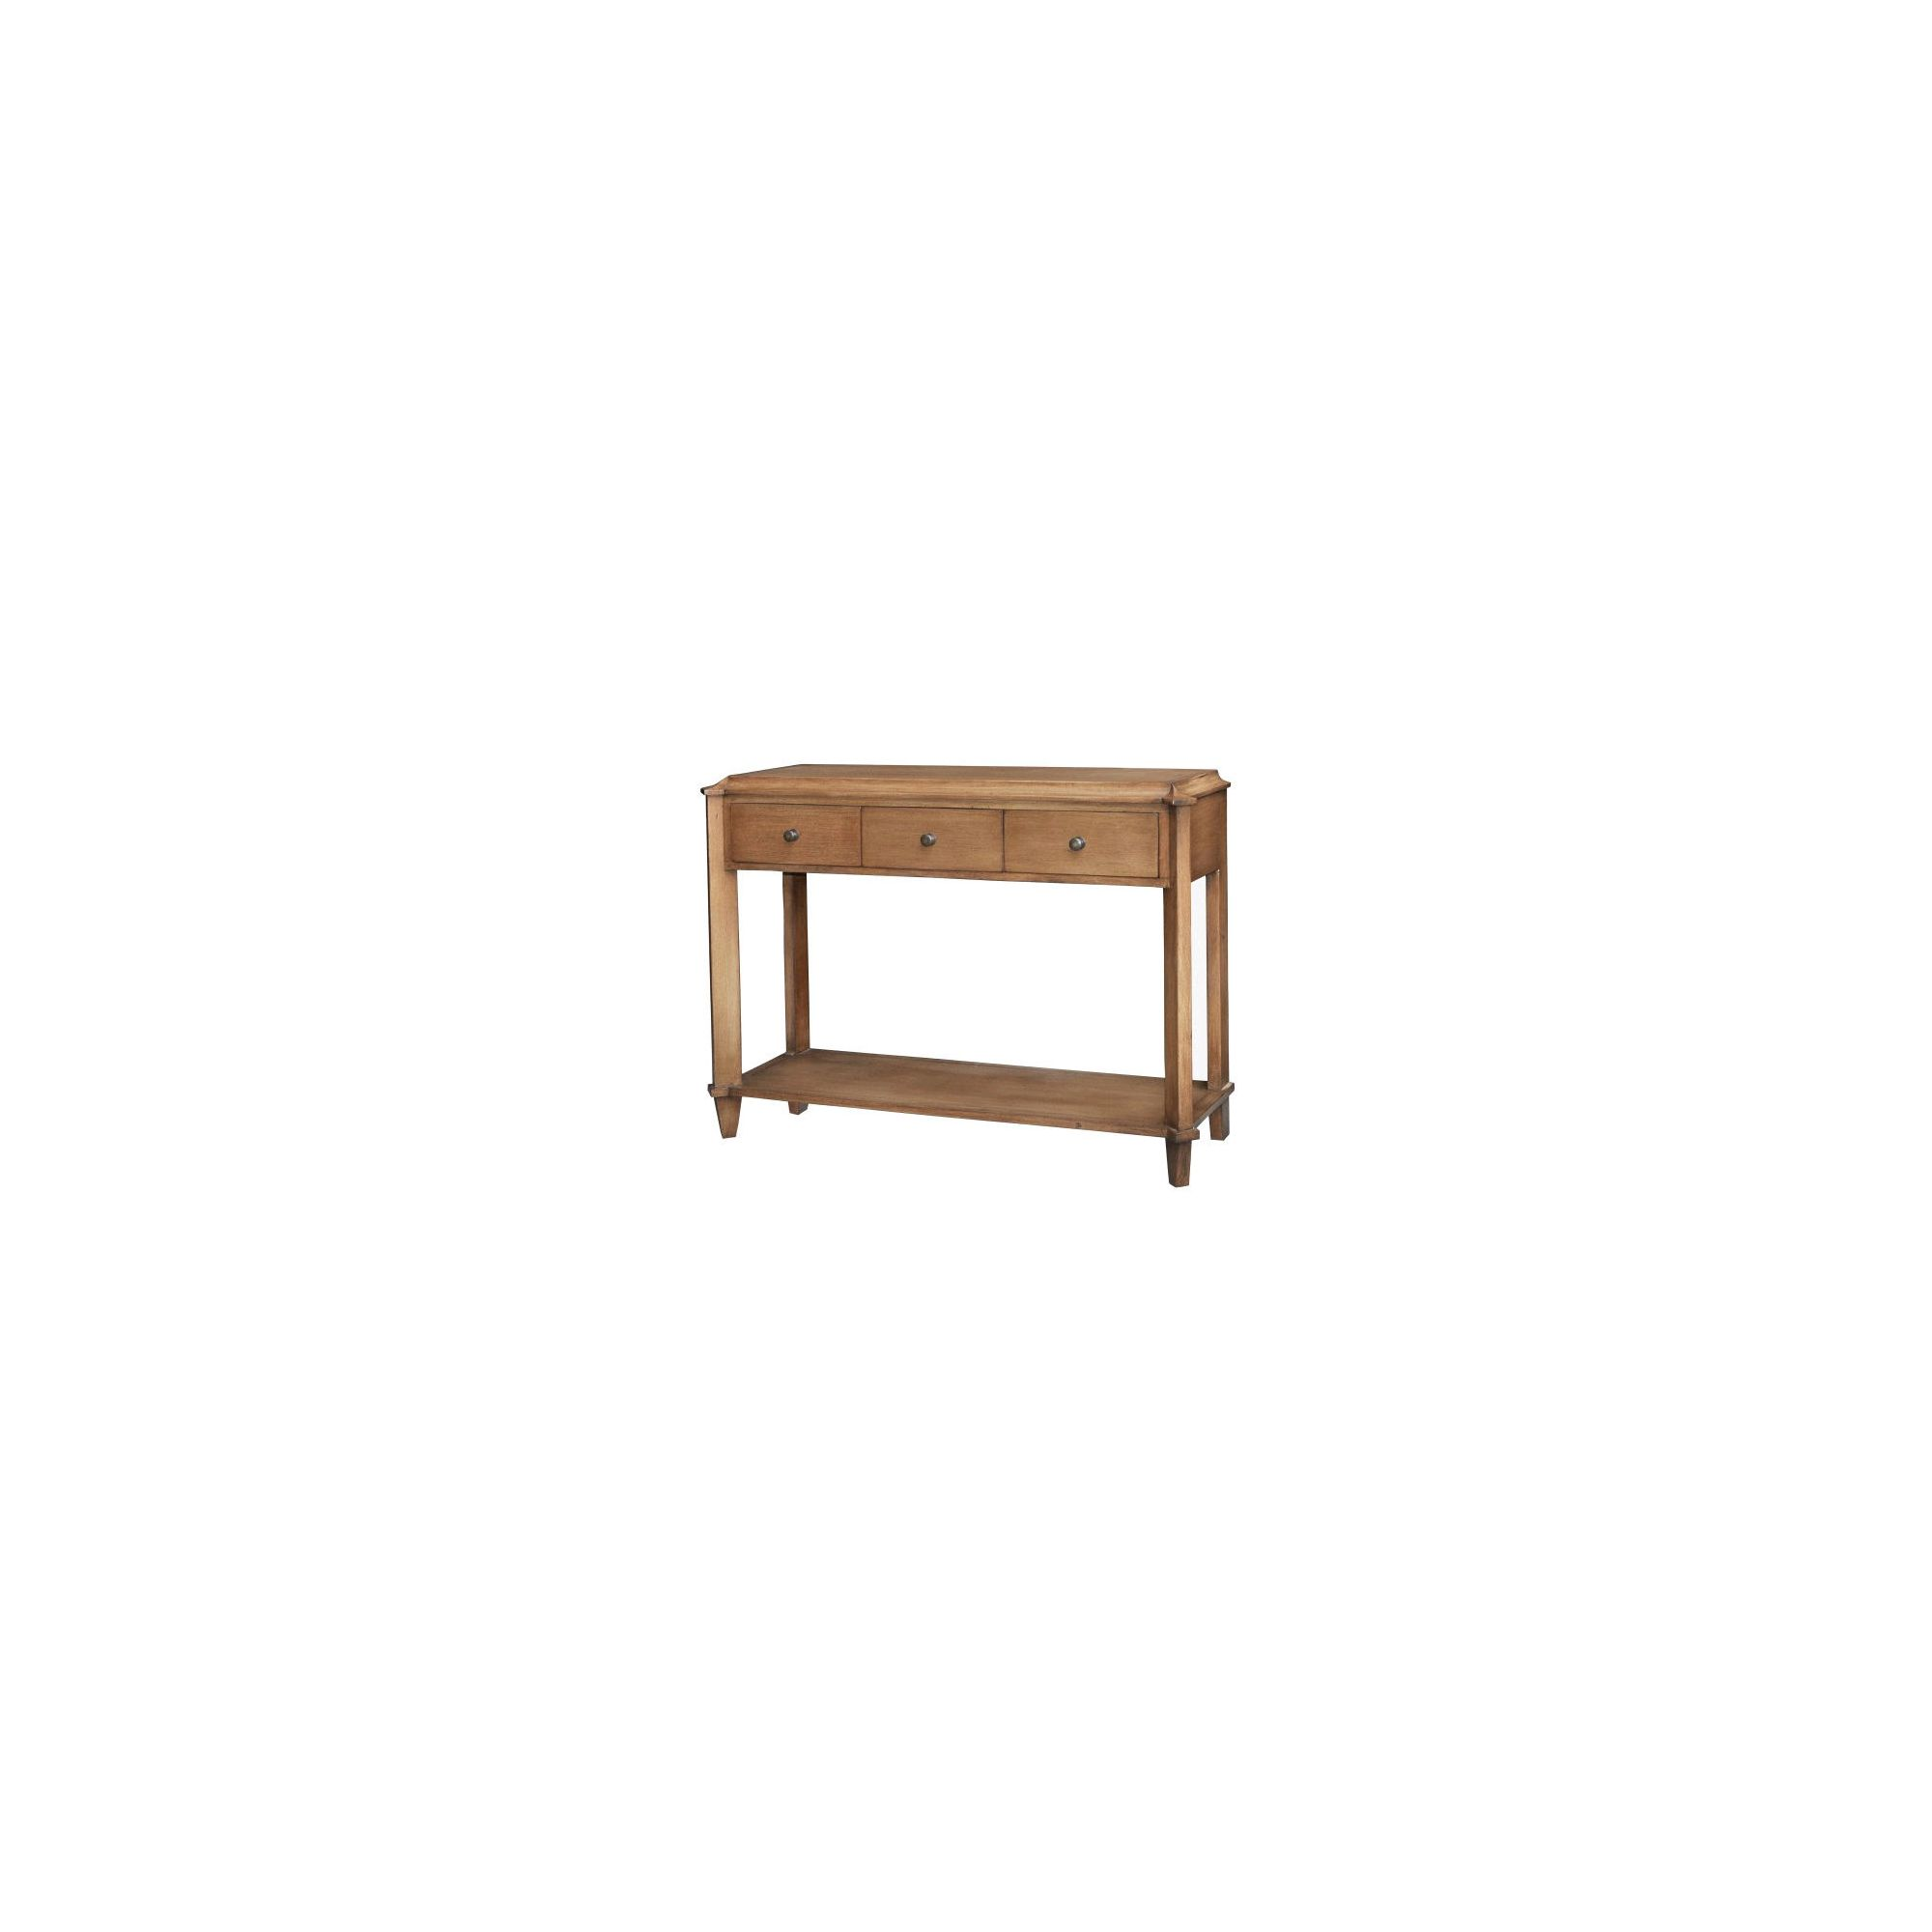 Lock stock and barrel Shell Knowle Console Table in Mahogany at Tesco Direct